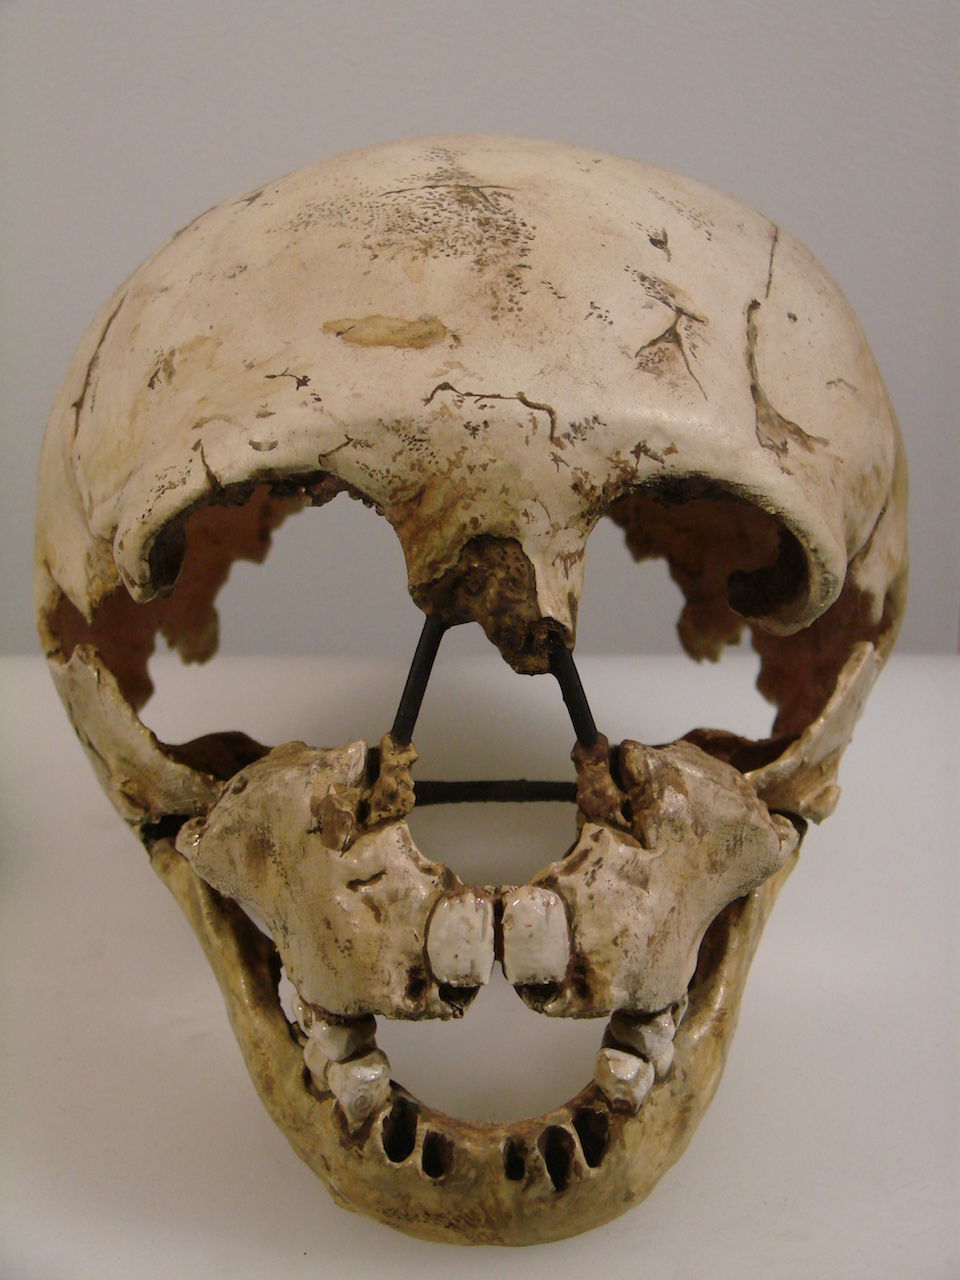 The Gibraltar 2 skull, discovered in 1926 in Devil's Tower Cave, was the second Neanderthal skull to be found in Gibraltar. Photo credit: Muséum d'Anthropologie, campus universitaire d'Irchel, Université de Zurich (Suisse) : Homo neanderthalensis (Gibraltar), via Wikipedia